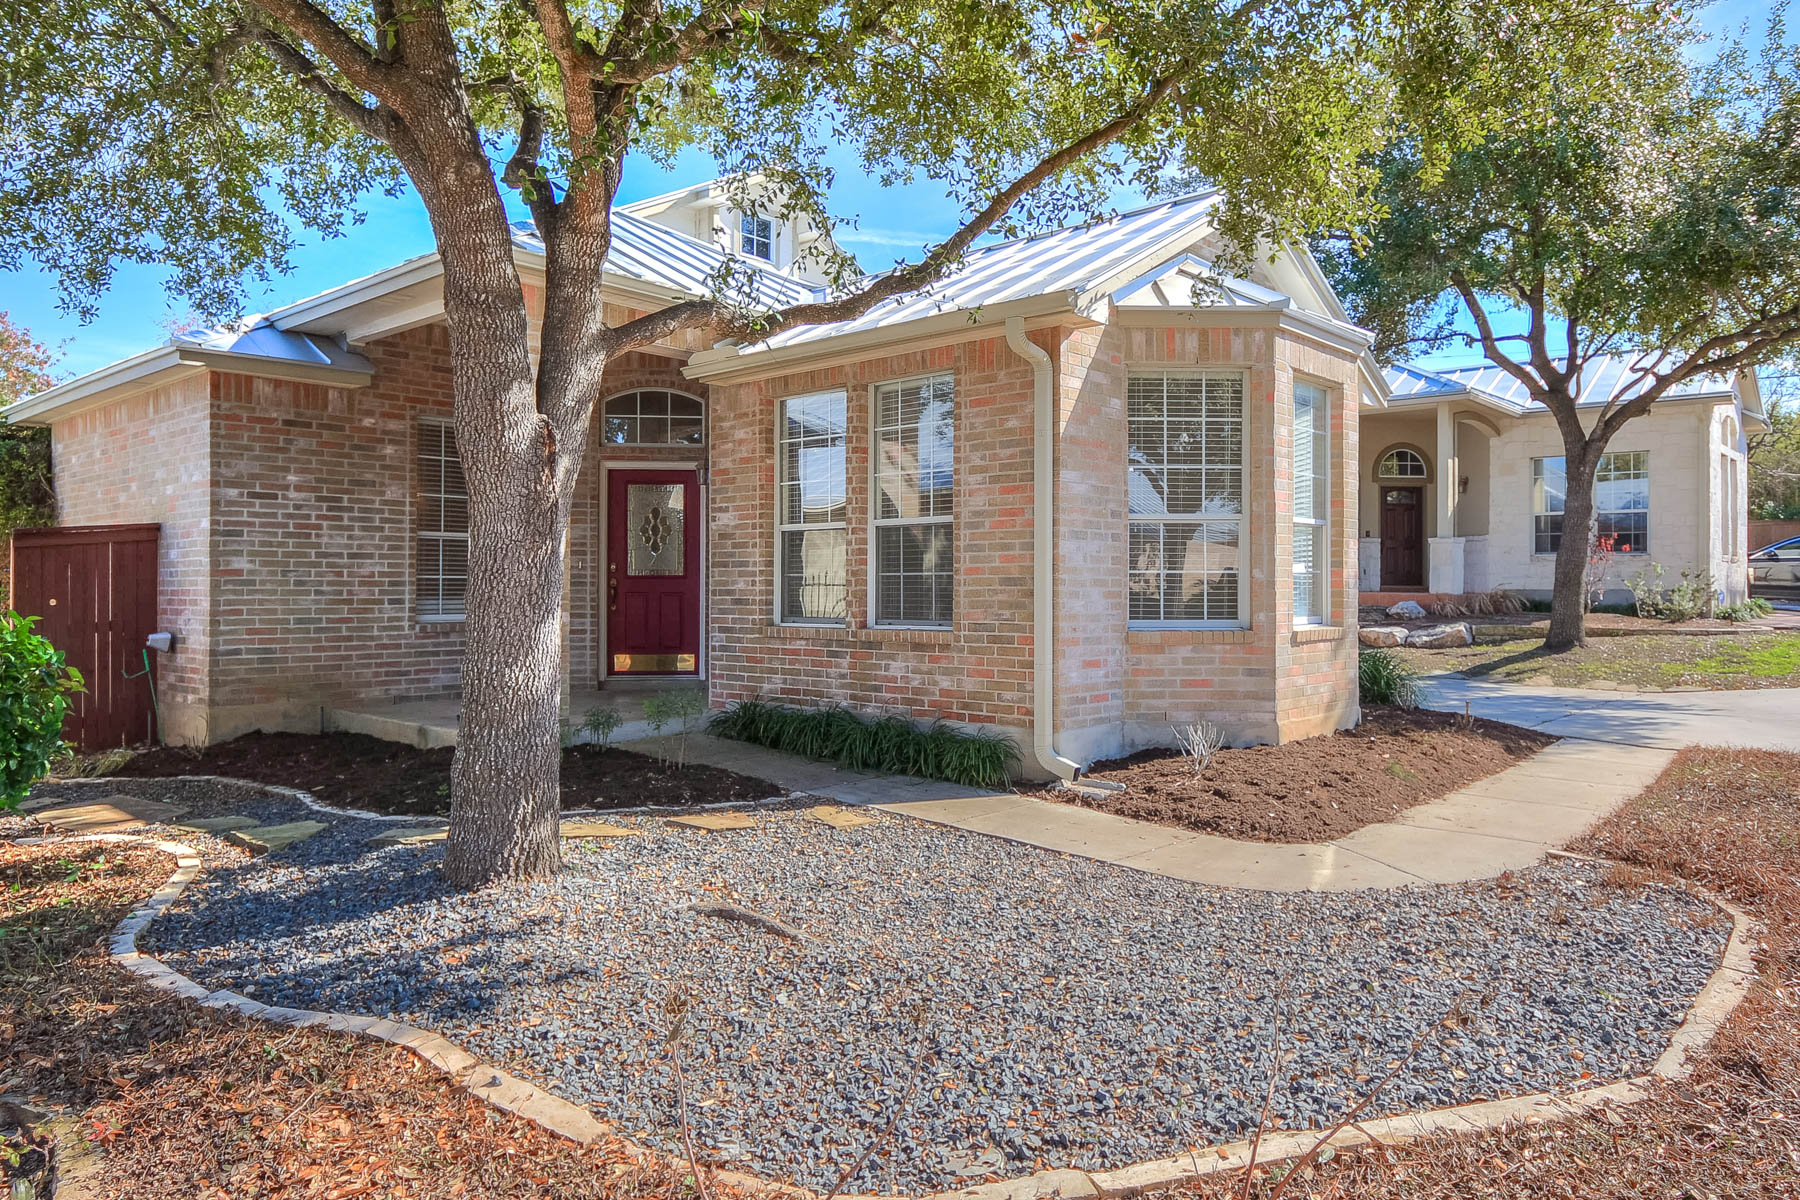 Single Family Home for Sale at Lovingly Designed Home in Oakwell Farms 58 Fonthill Way San Antonio, Texas 78218 United States